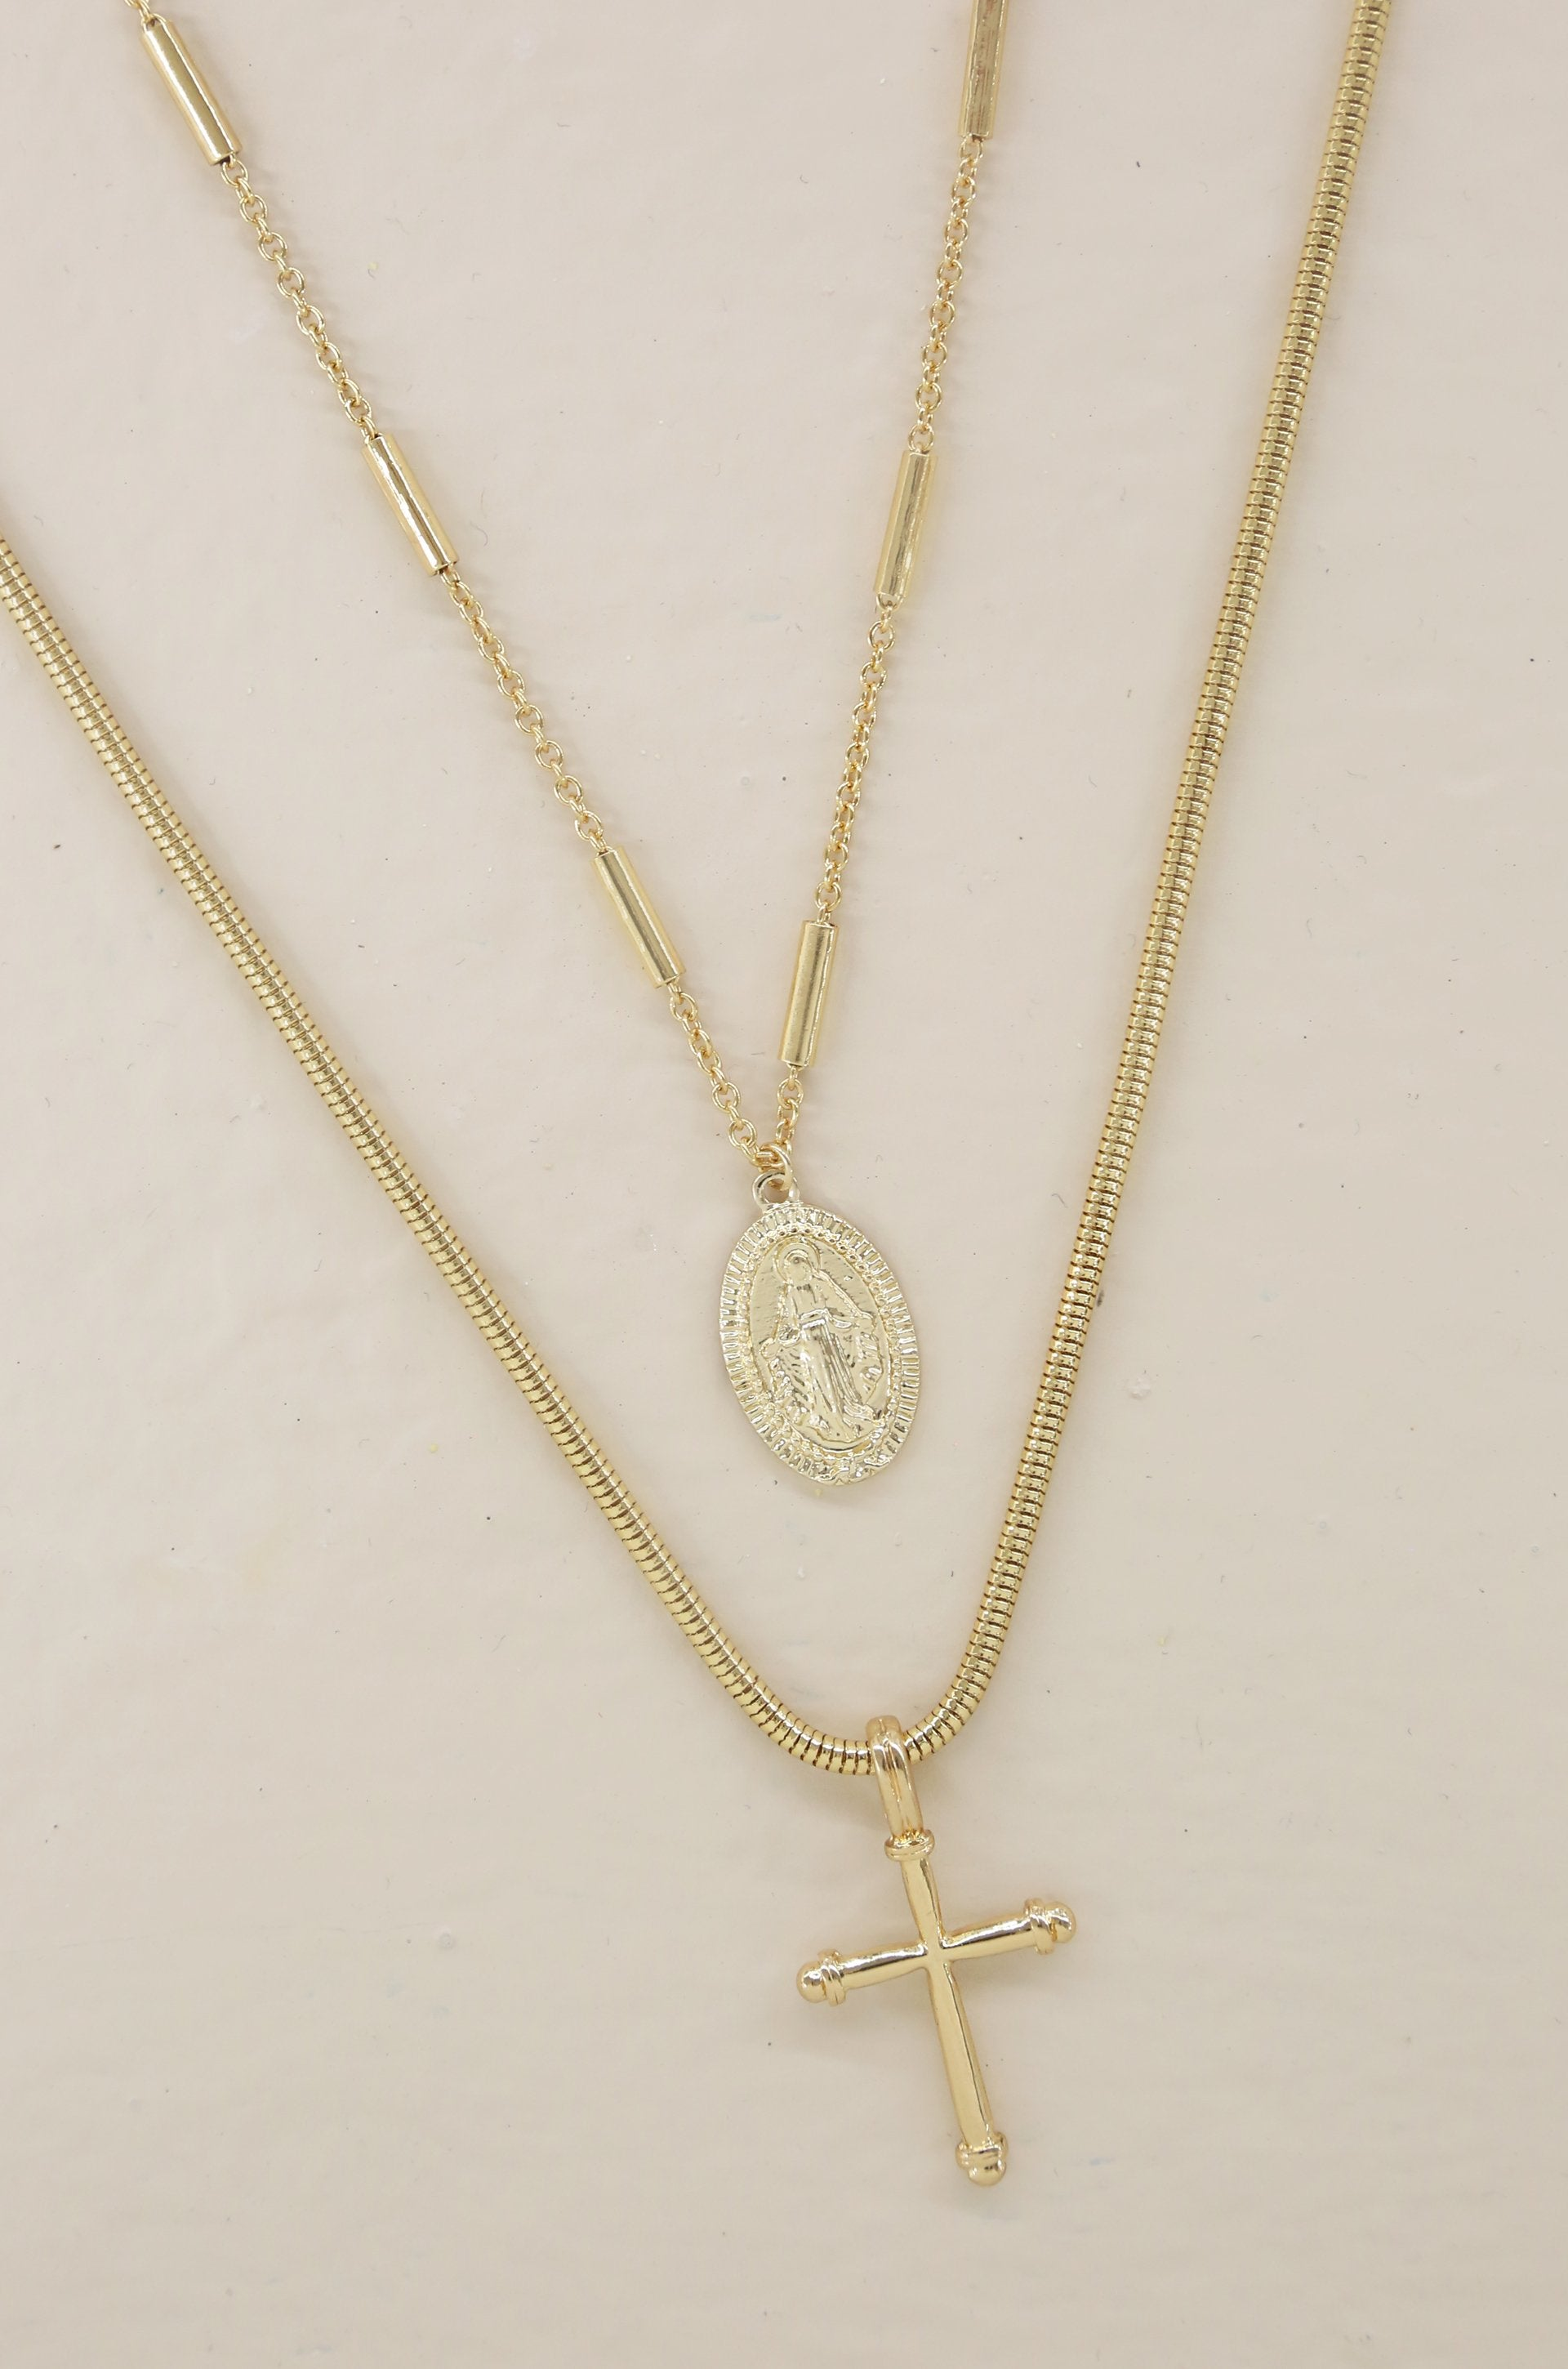 'Like a Prayer' 18kt Gold Layered Cross and Coin Necklace